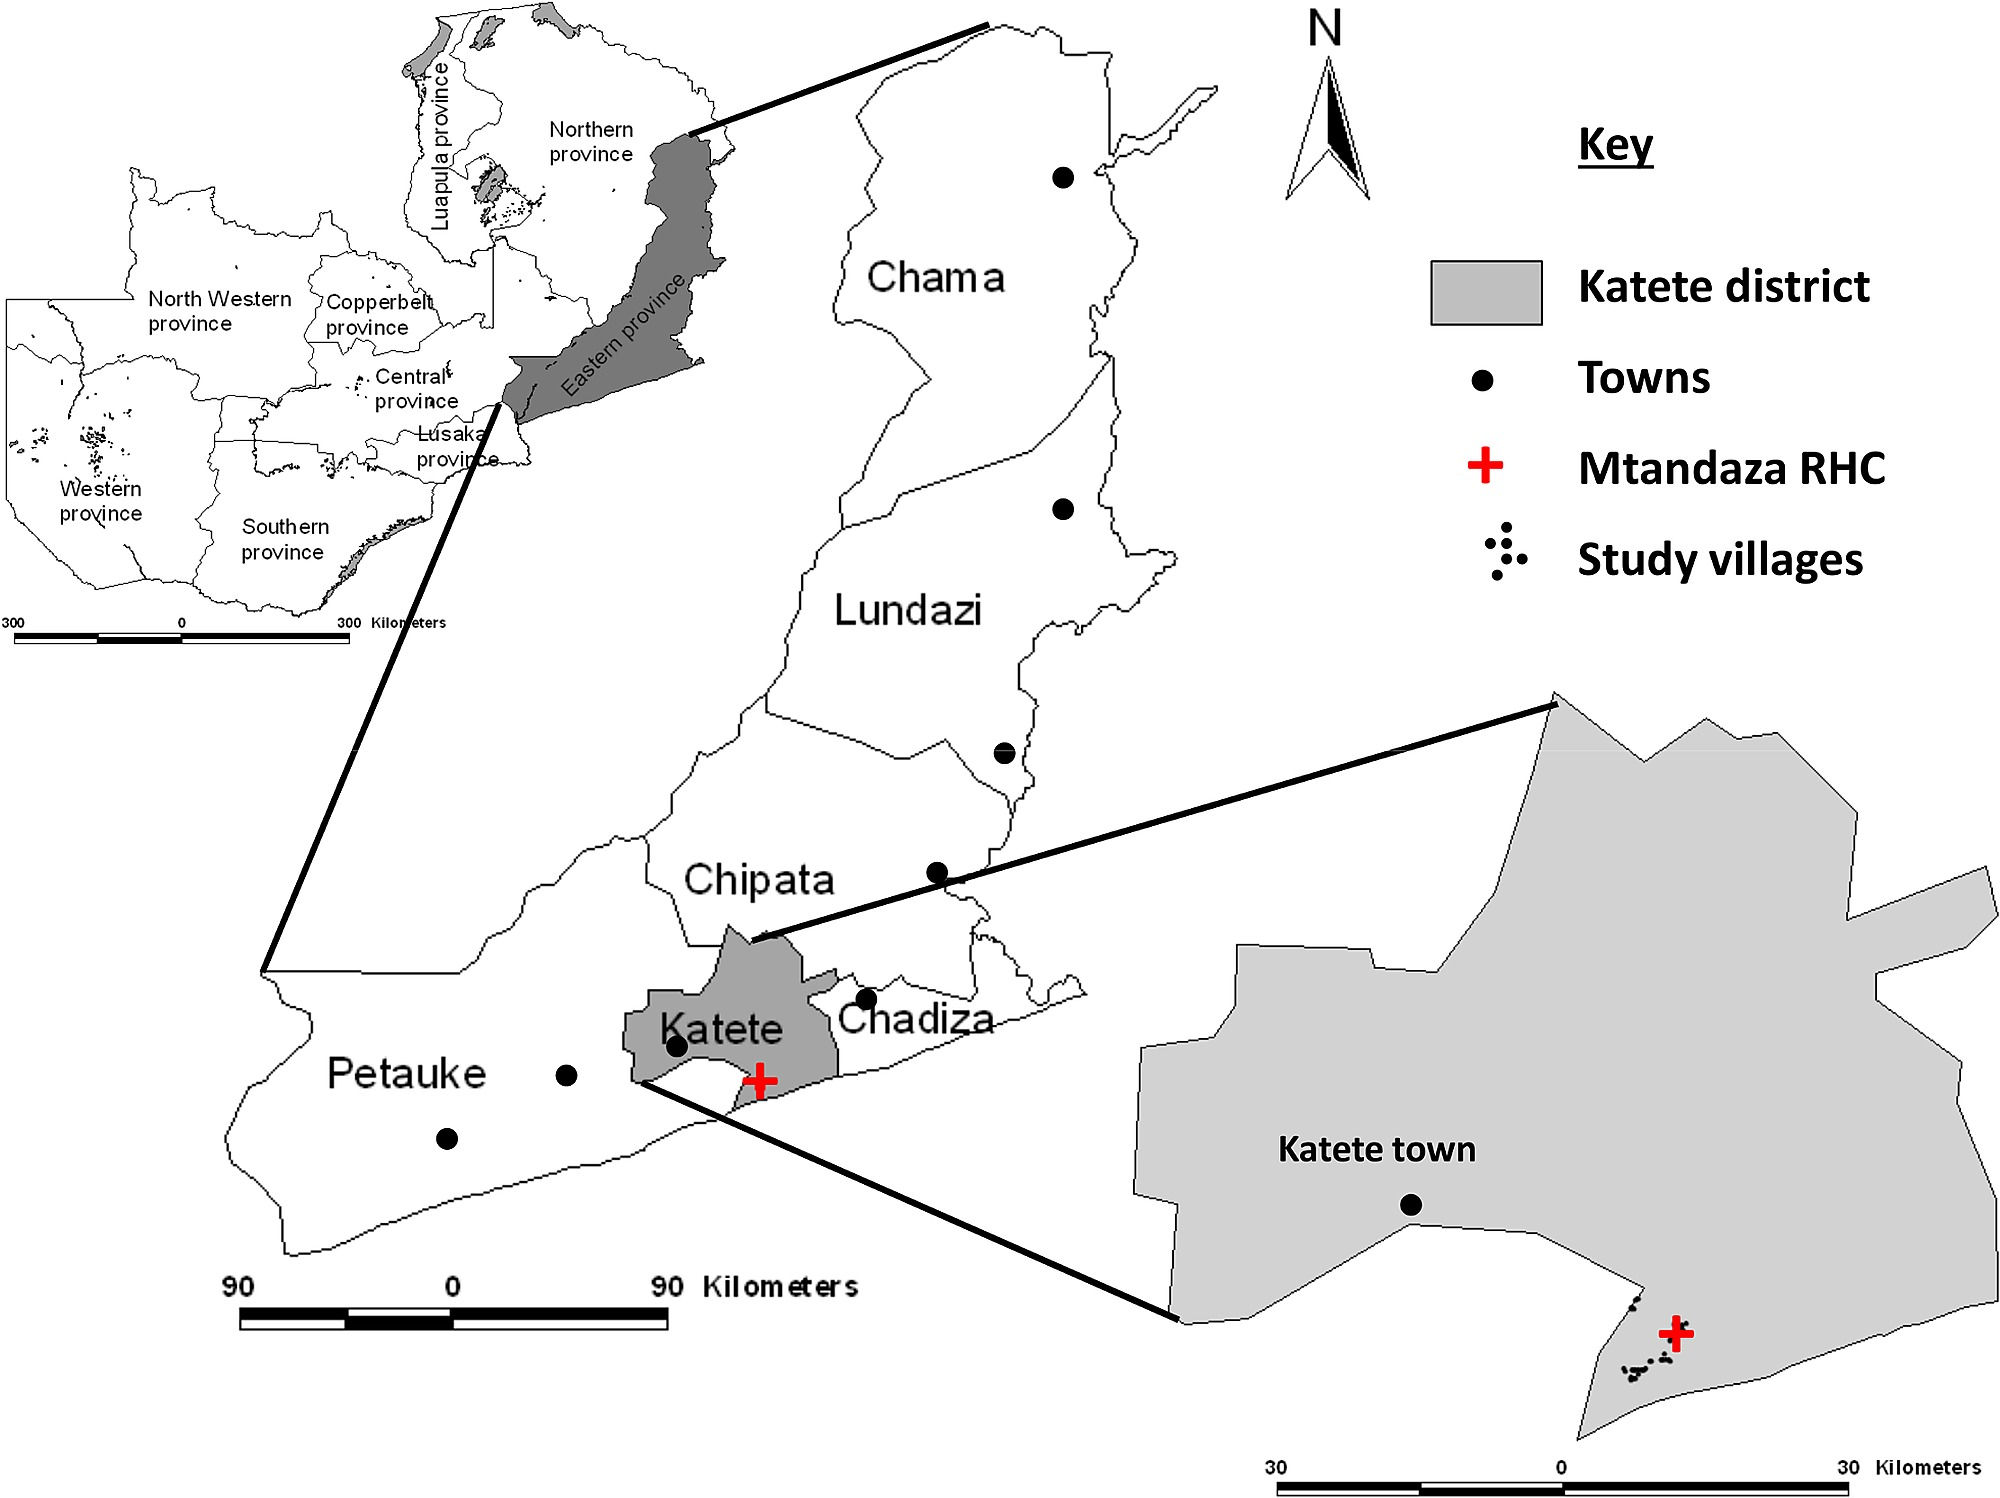 Map of Zambia showing the study area in Katete district of the